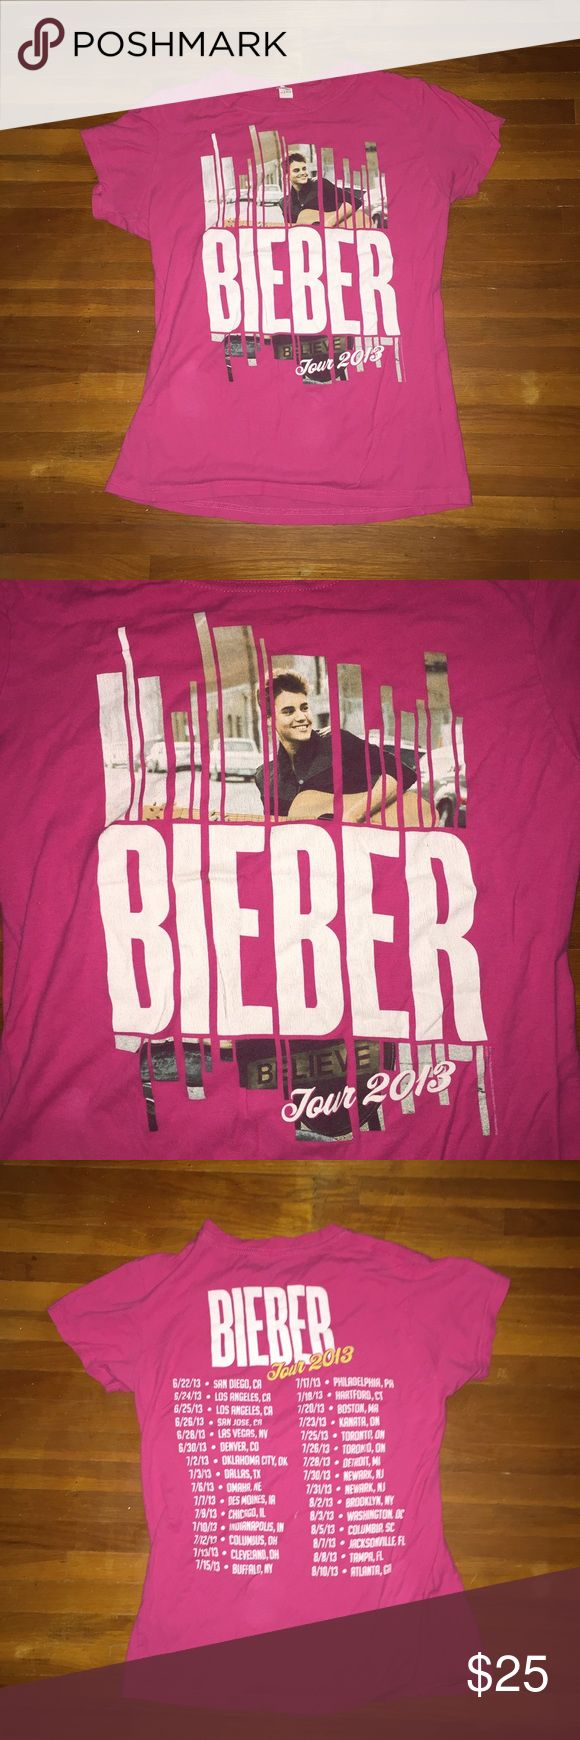 Justin Bieber Believe Tour Merch A pink believe tour merch shirt with all the tour dates on the back. Worn only a few times and very hard to find! (I threw on a brand because I know they sell some merch from his purpose tour). Urban Outfitters Tops Tees - Short Sleeve